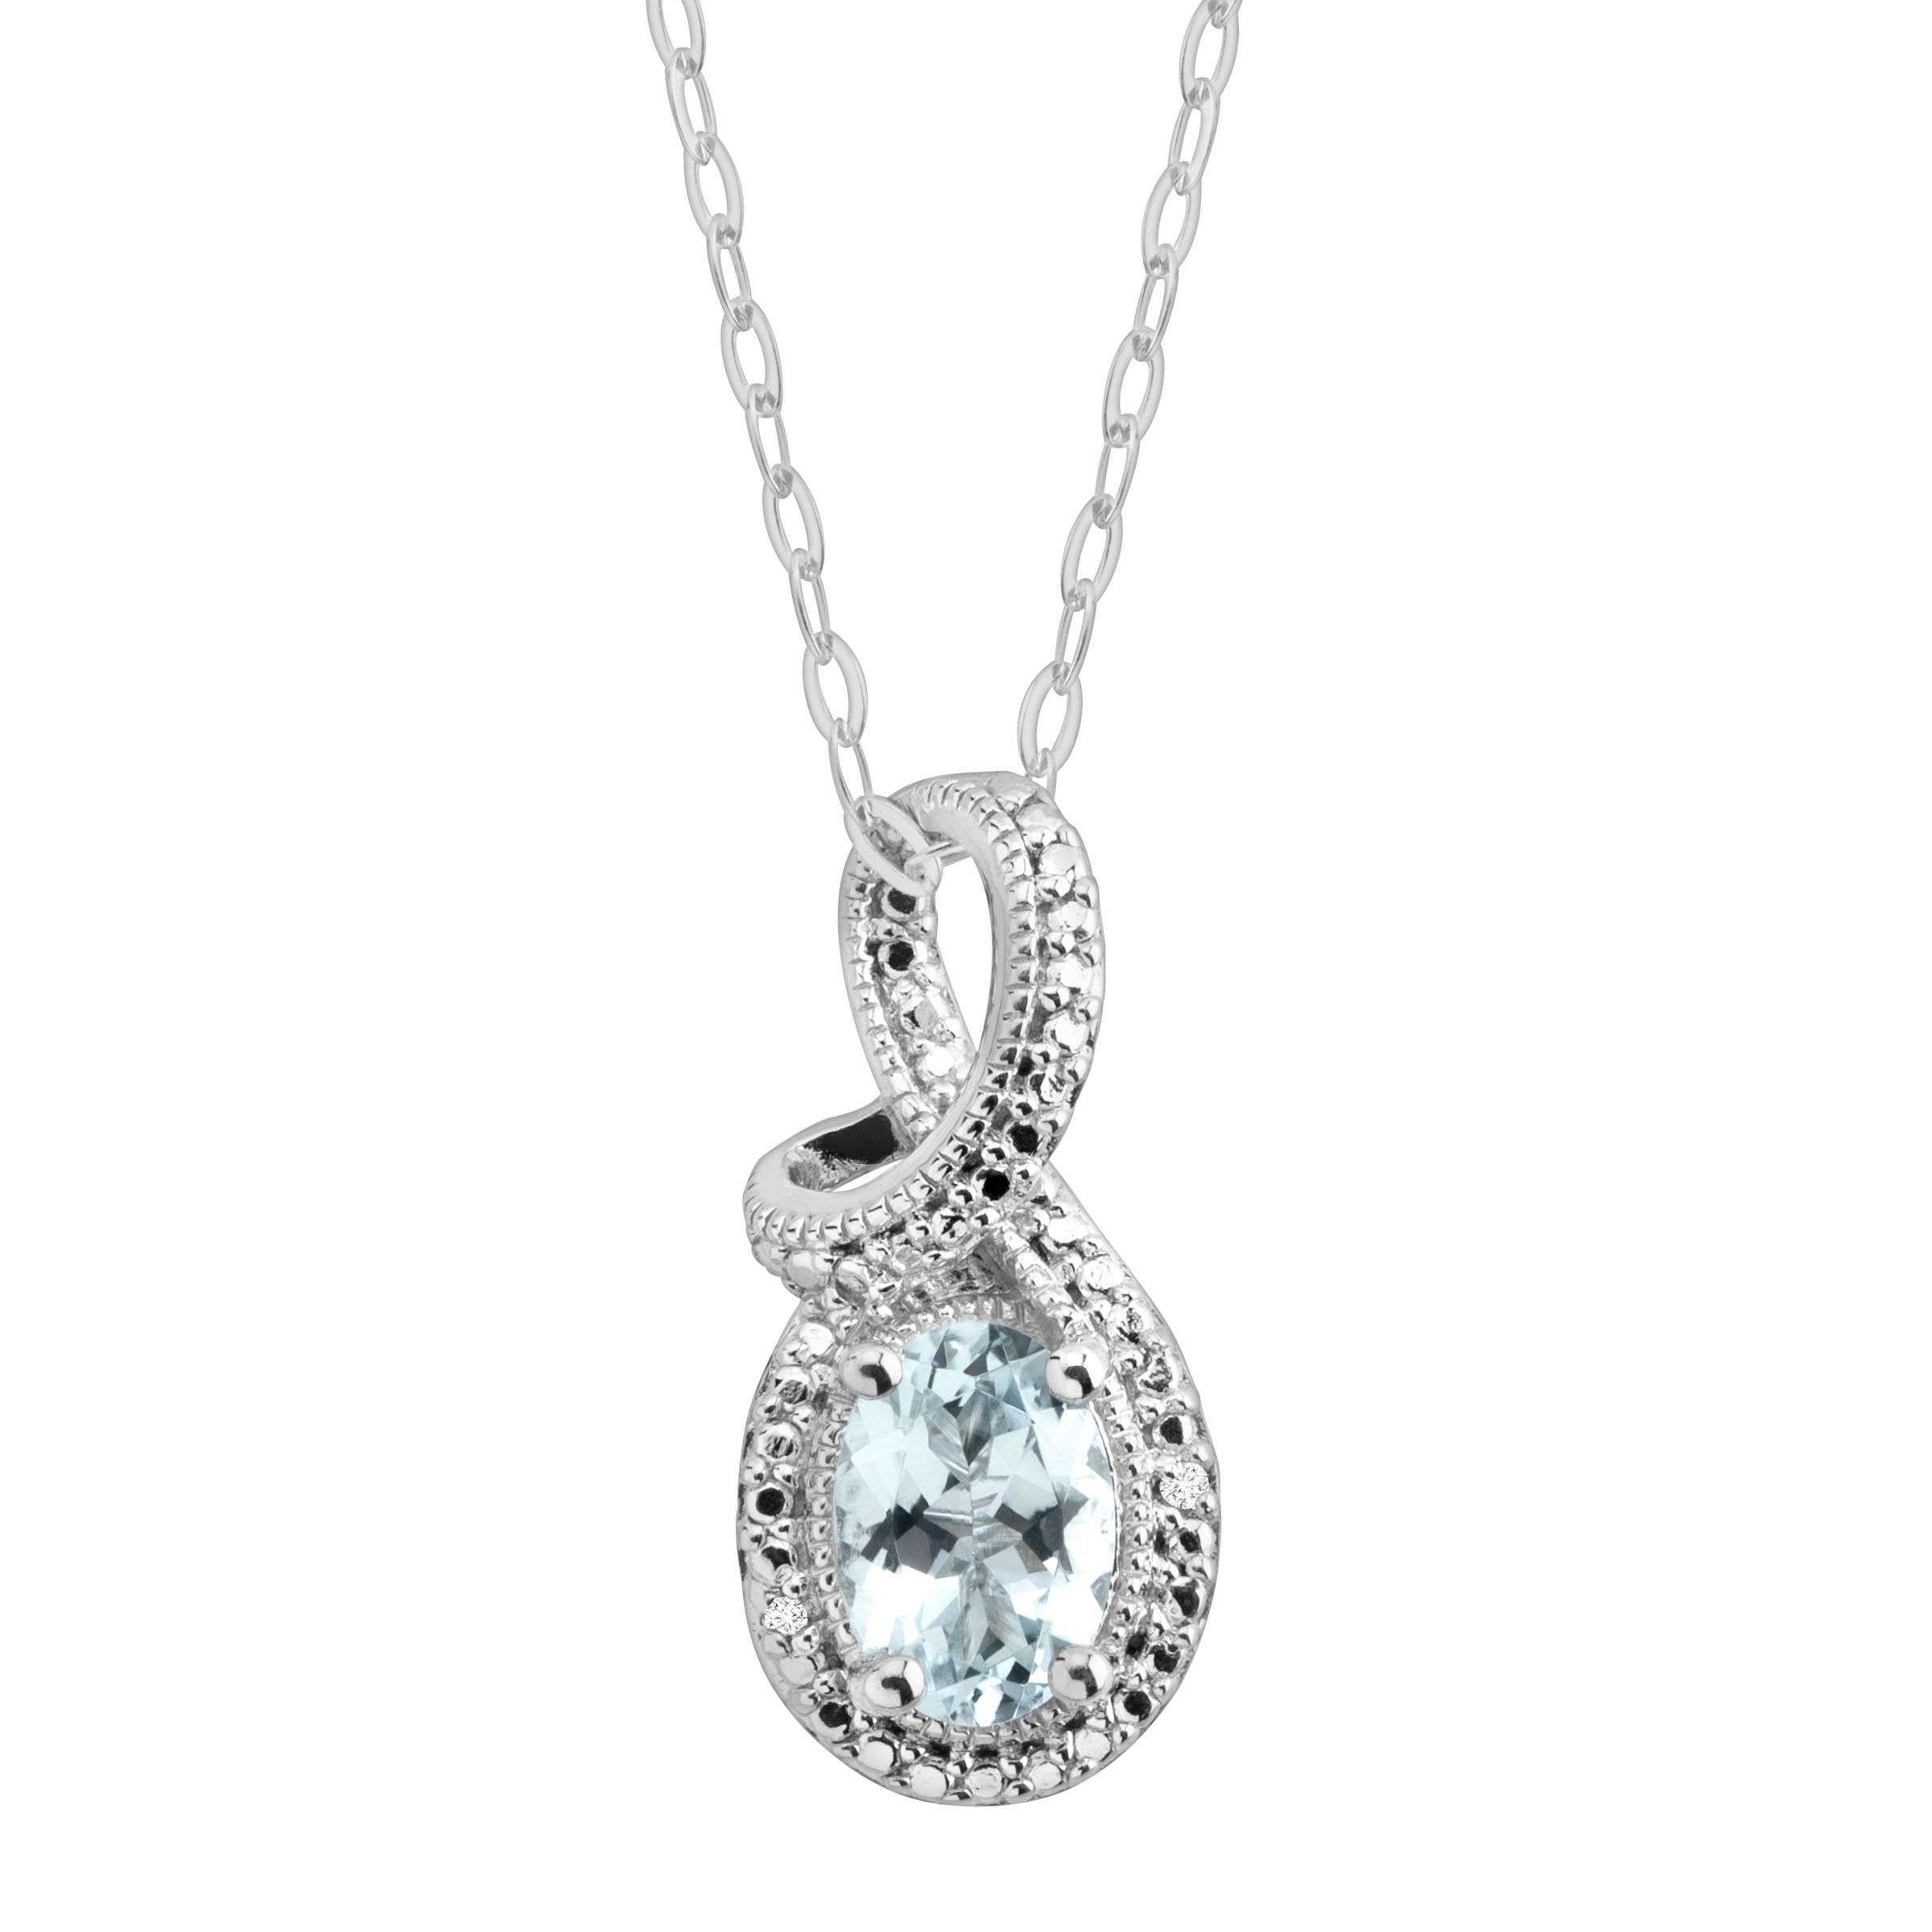 pdp john pendant com lewis gold ewa rsp buyewa at online aquamarine johnlewis main white pear